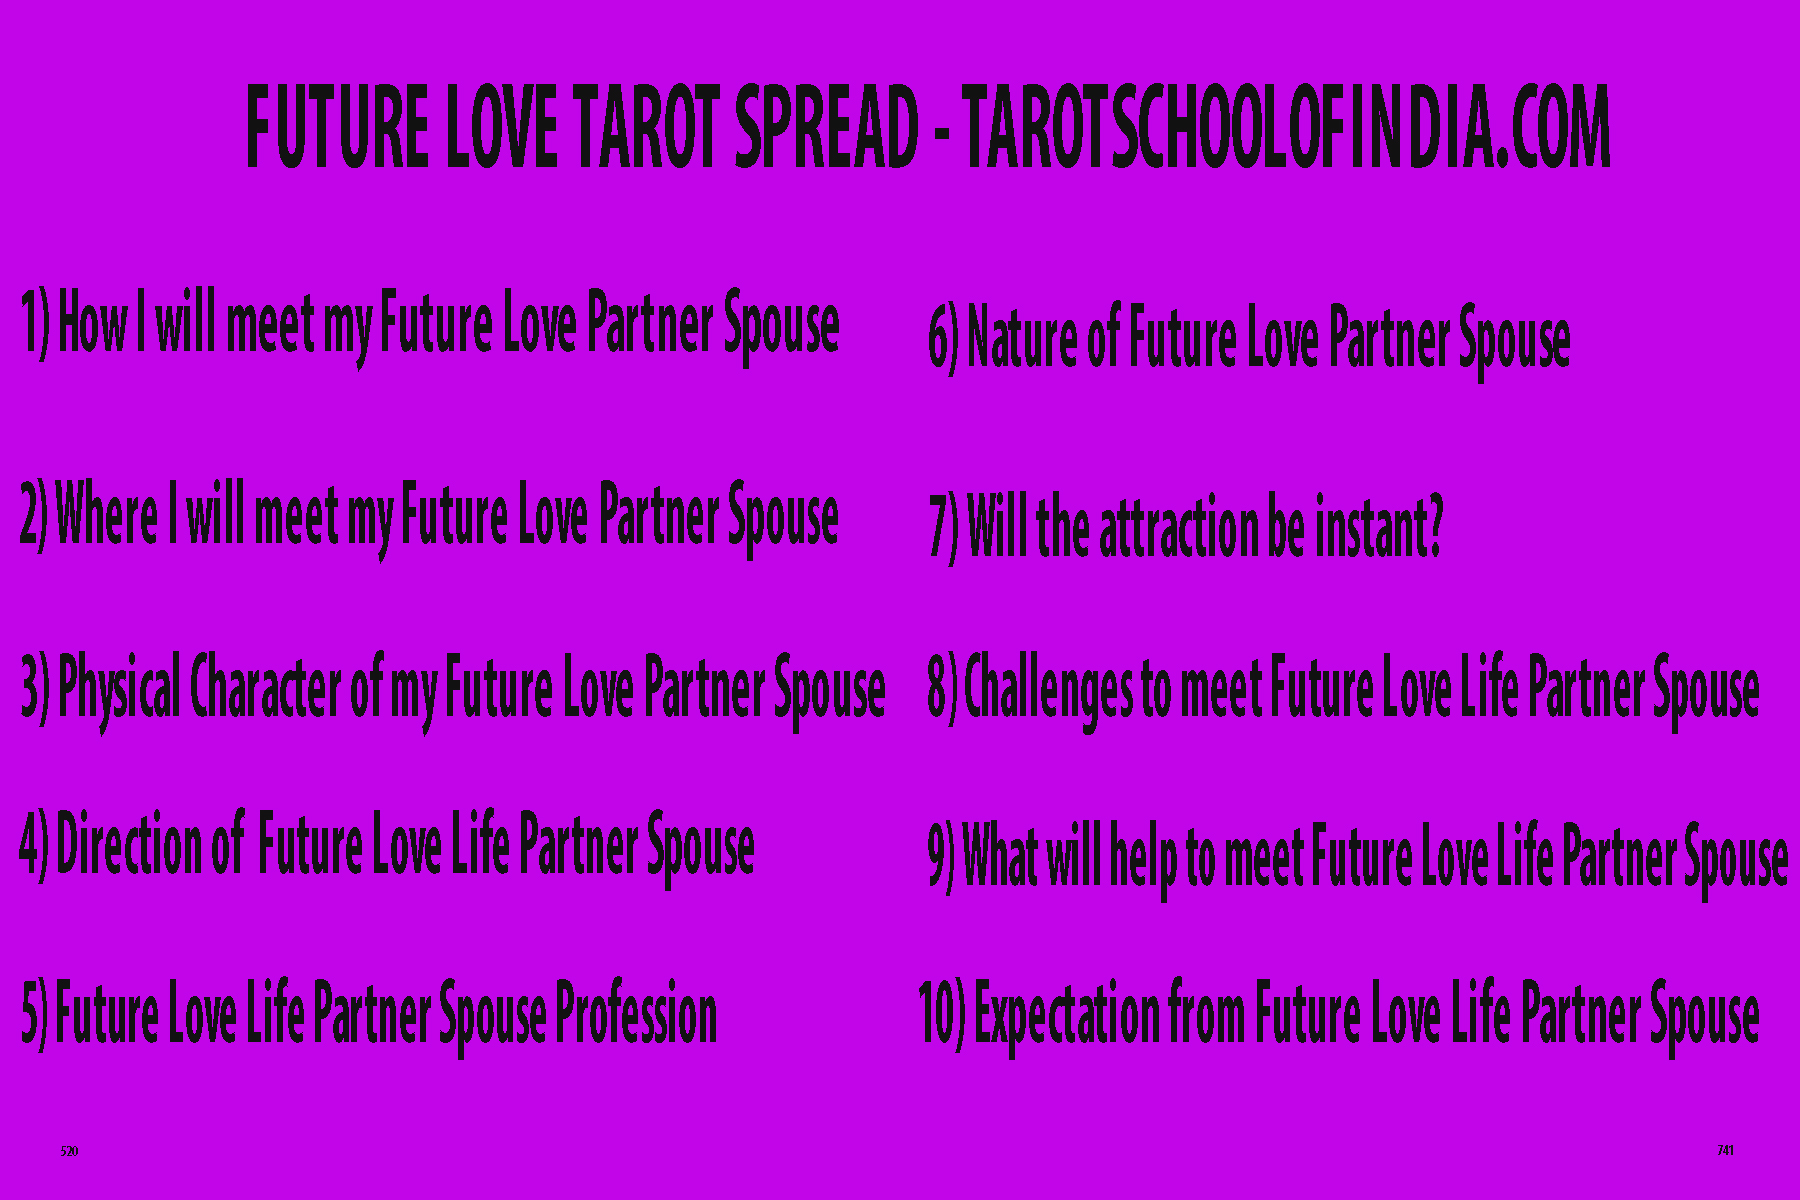 Image Showing Future Love Tarot Spread